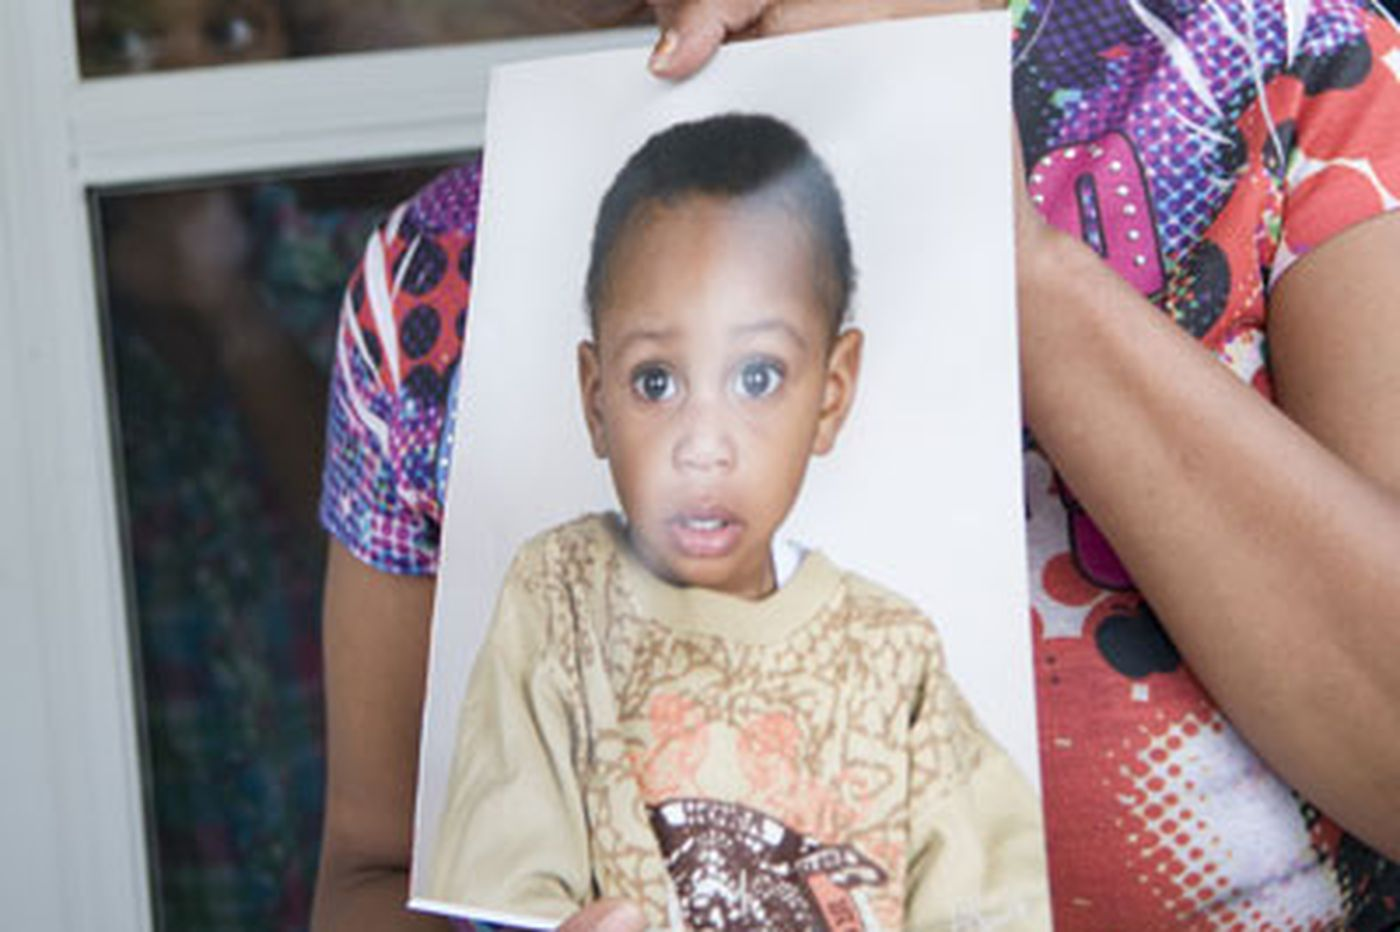 Wound proves fatal to 2-year-old Chester tot Terrence Webster